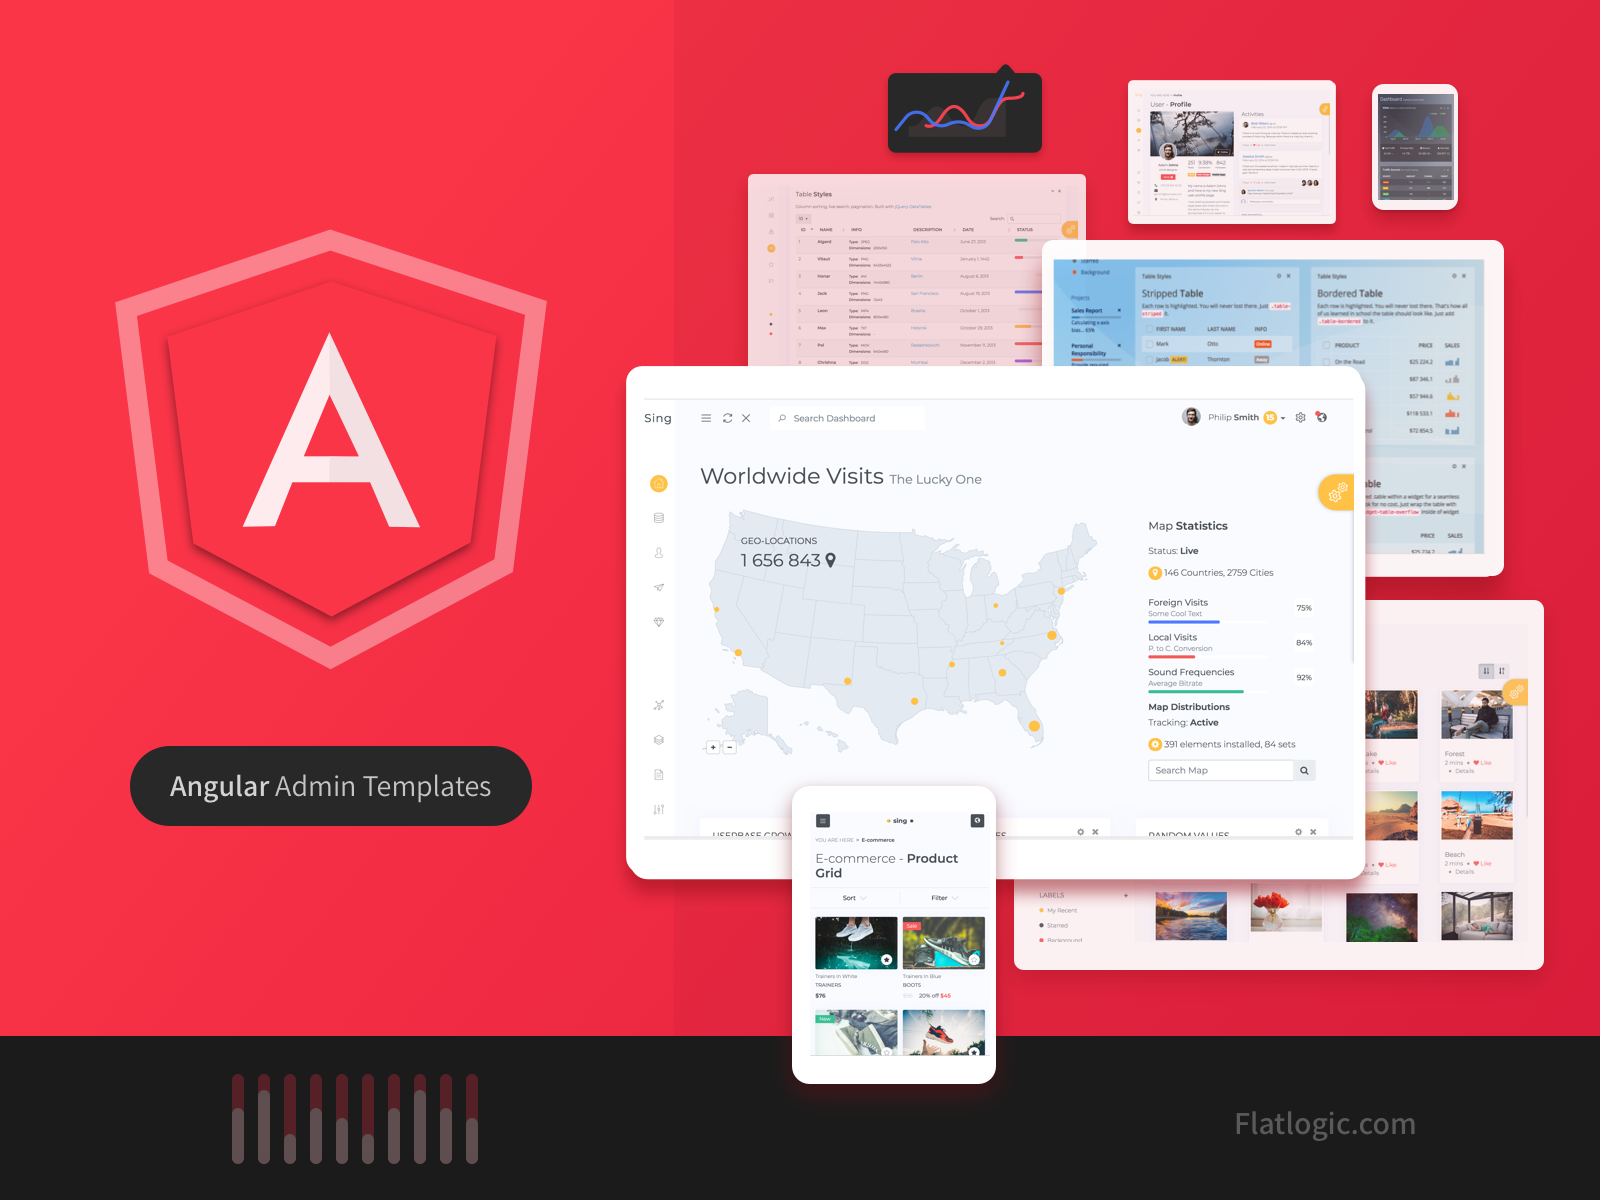 Top Angular Admin Templates in 2019 - Flatlogic - Blog